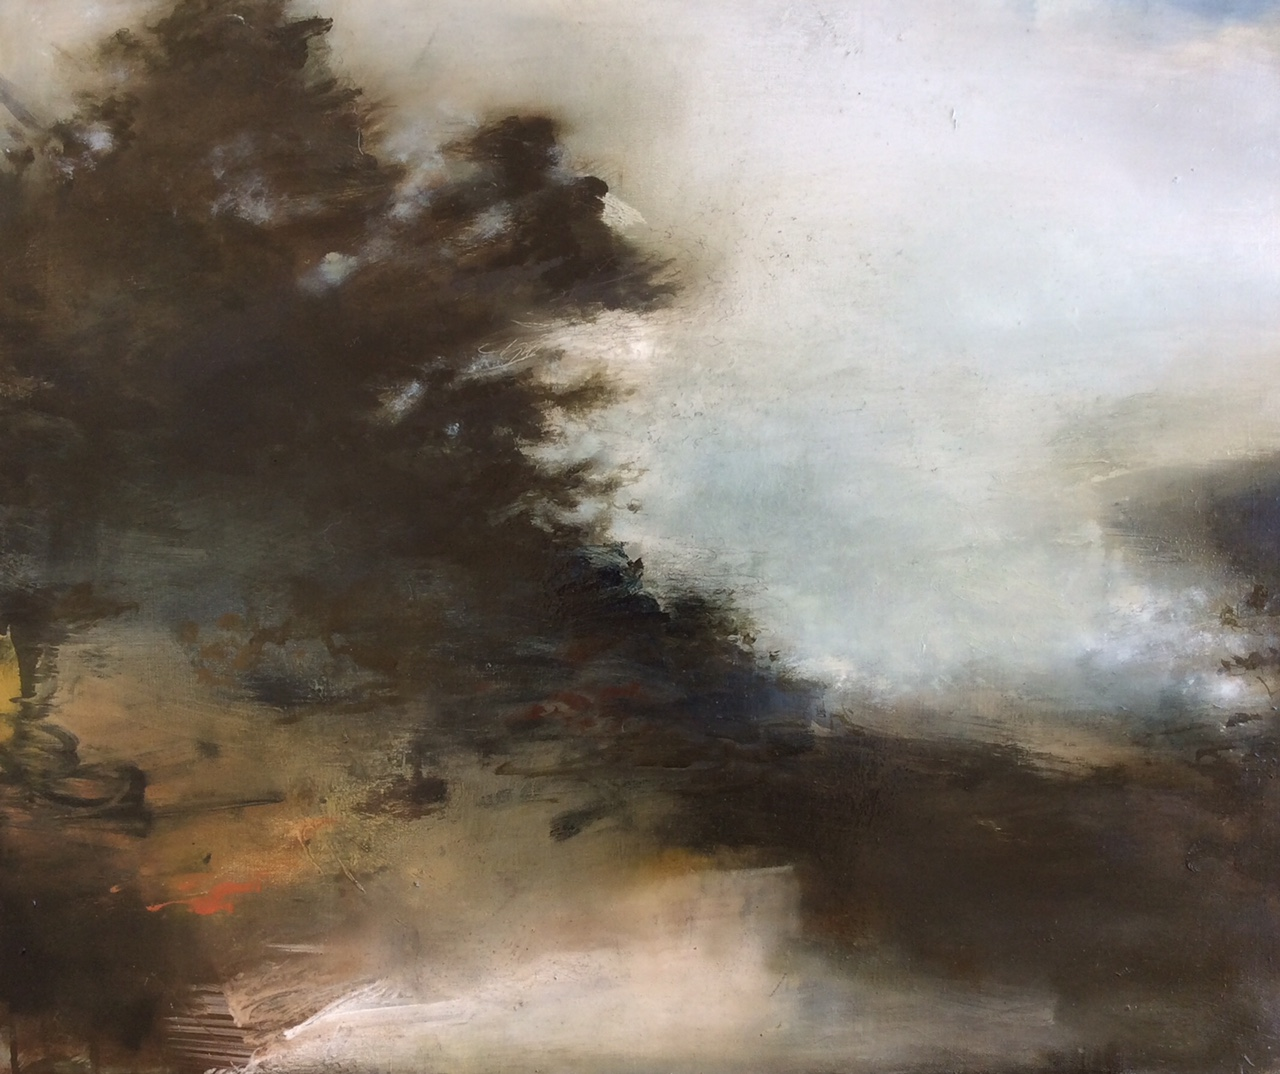 Artist: Linda Felcey  Title: Deluge  Size: 50 x 60 cm  Medium: Oil on linen  Price: £1250